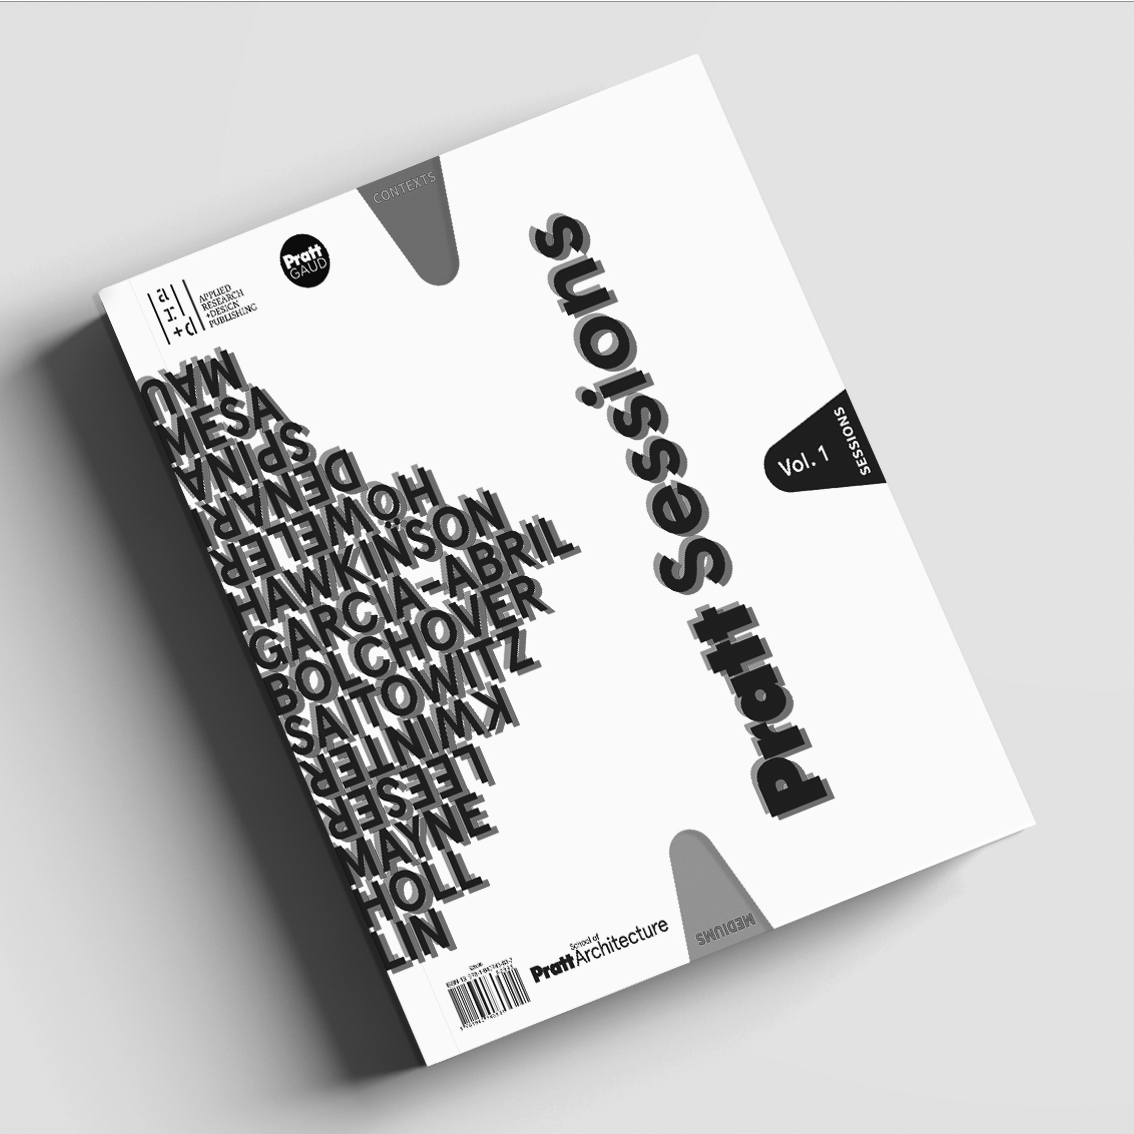 Pratt Sessions , Vol.1/2017     The  Pratt Sessions  publications present conversations between notable practitioners and thinkers, and serves as a distributed symposium that is curated yet open-ended; exploring current manifestations and future potentials in discourse and the profession.